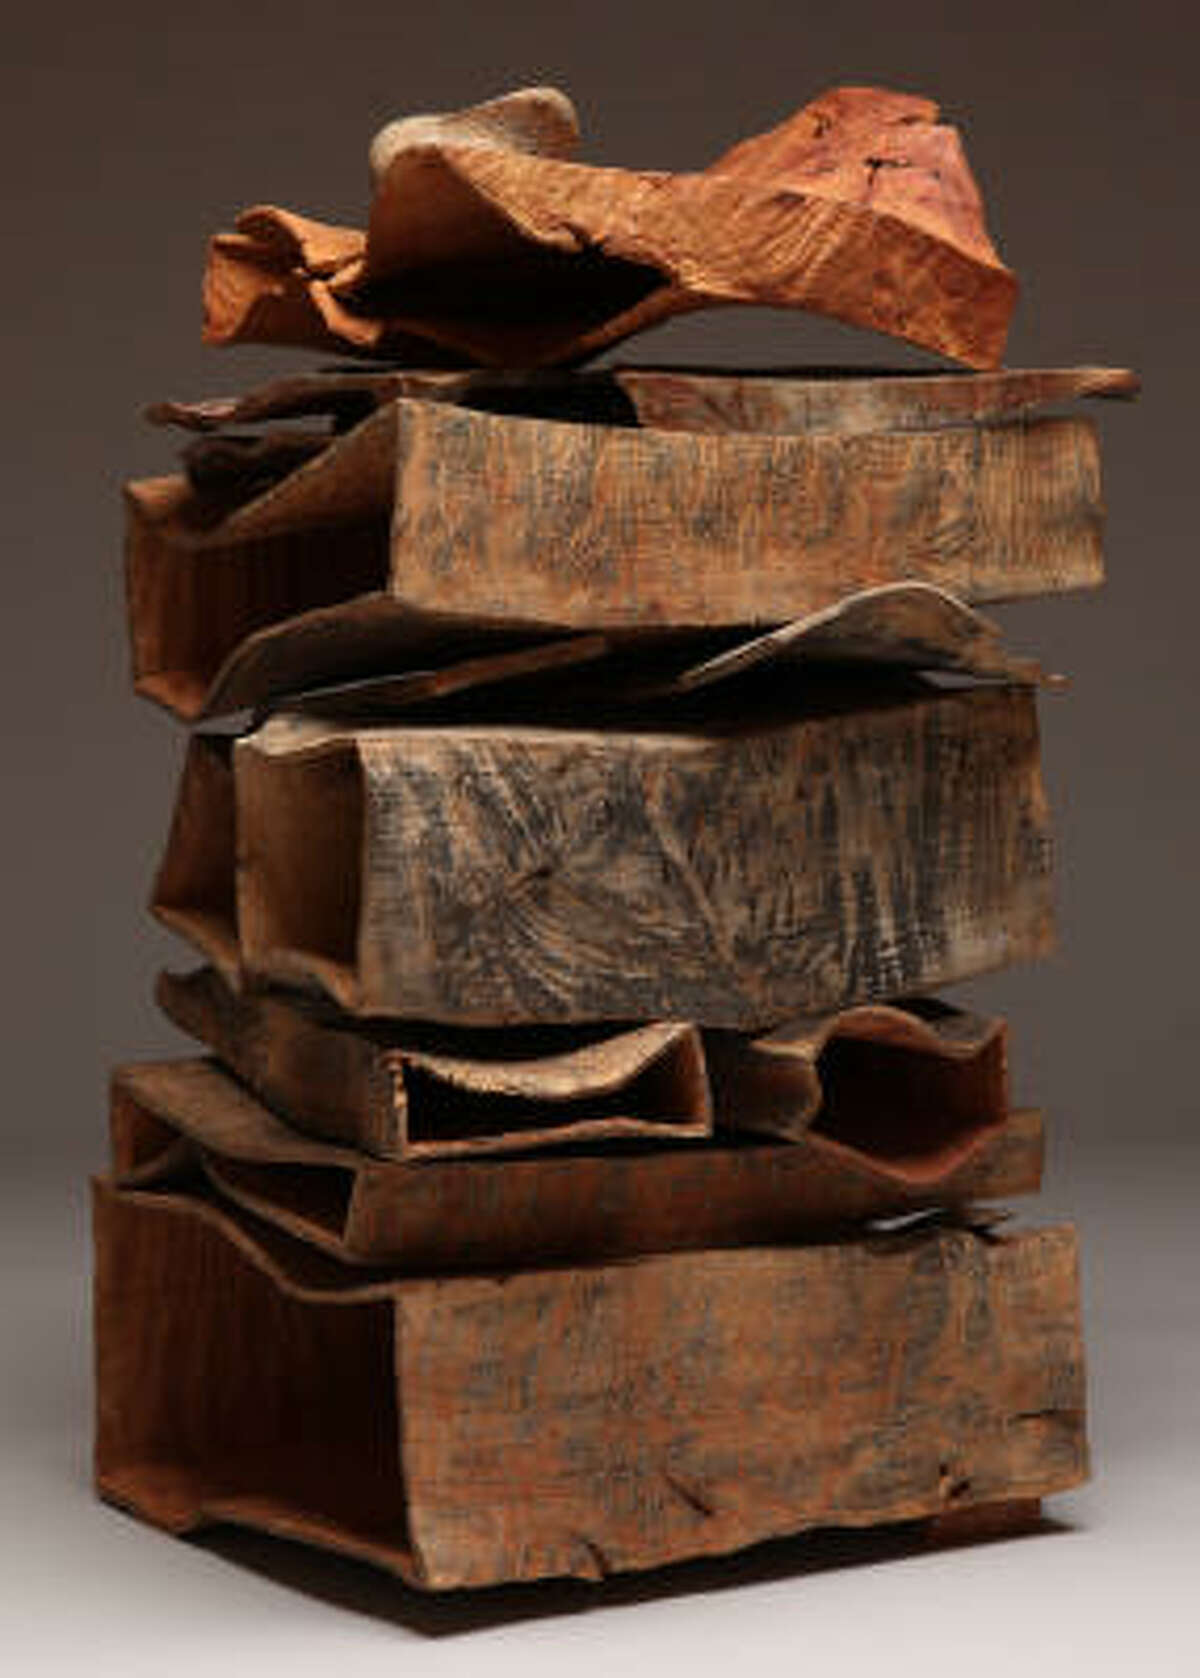 Coastal Stack IV, 2008, madrone burl and locust burl, carved, sandblasted, bleached, pigmented.